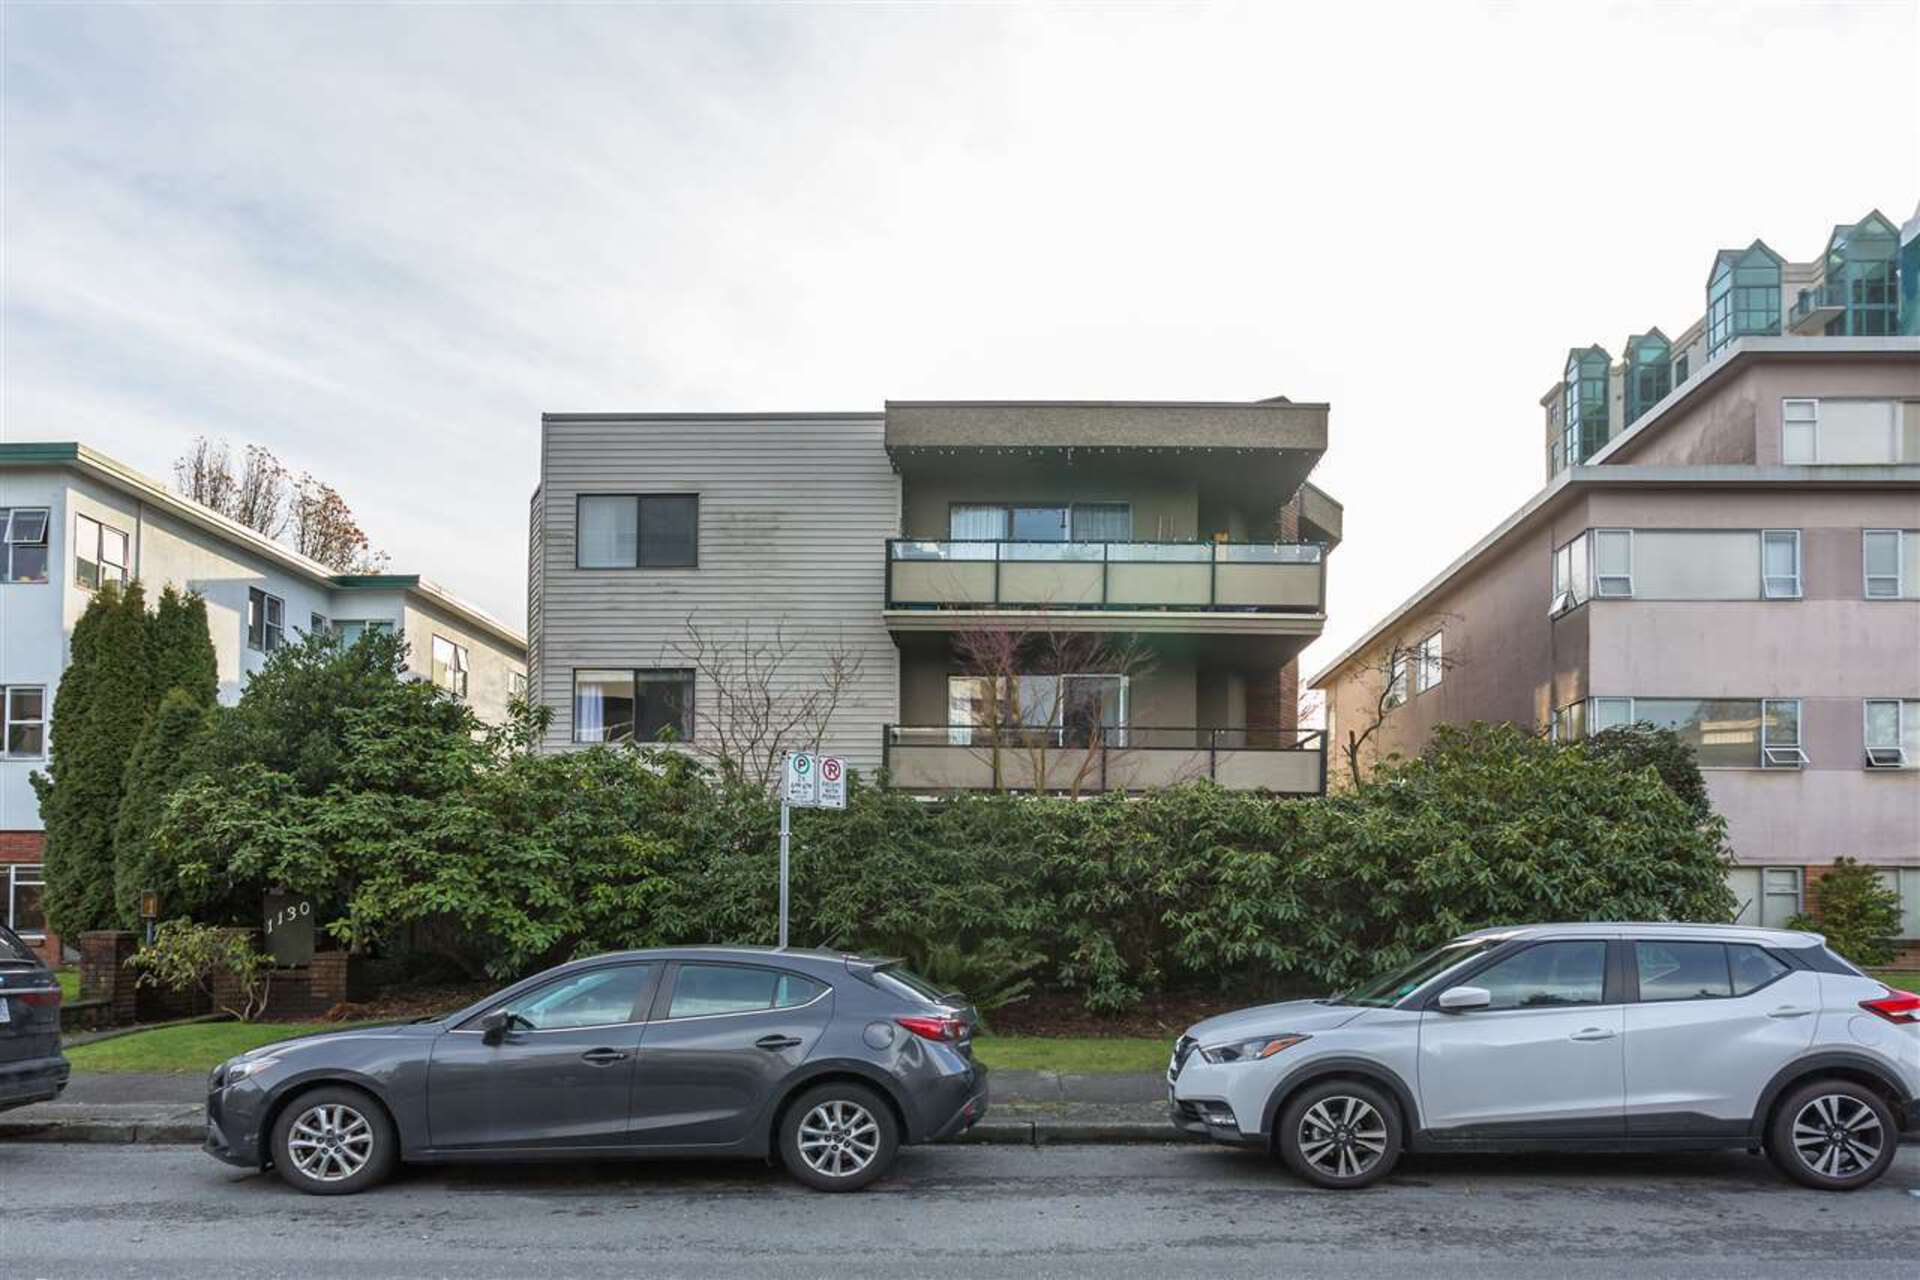 1130-w-13th-avenue-fairview-vw-vancouver-west-21 at 201 - 1130 W 13th Avenue, Fairview VW, Vancouver West